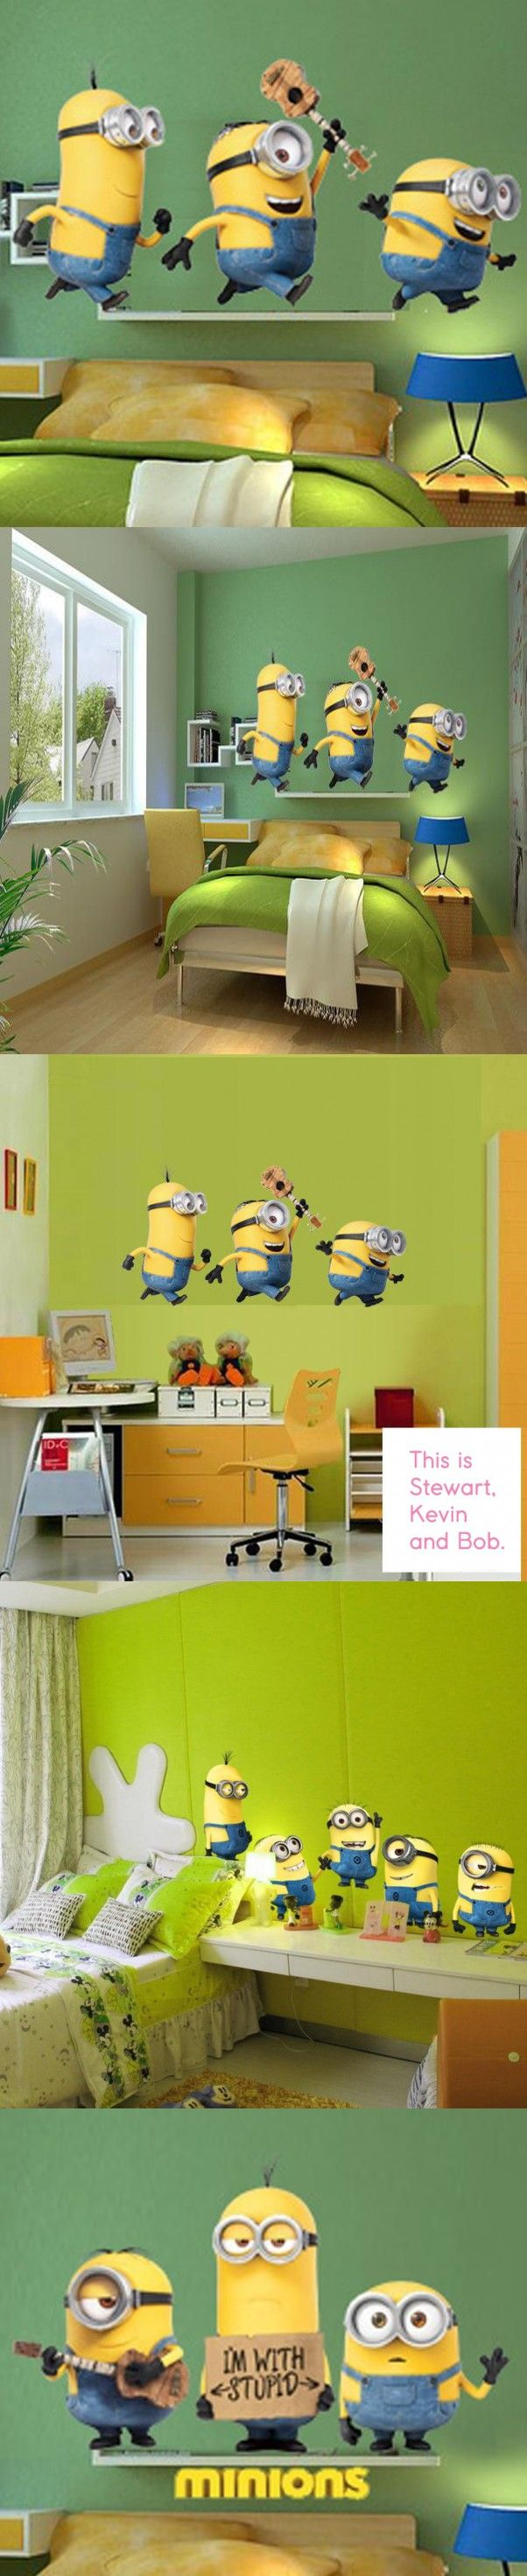 cute wall stickers home decor Removable minion wallpaper for kids room stikers for wall decoration PVC poster $36.99